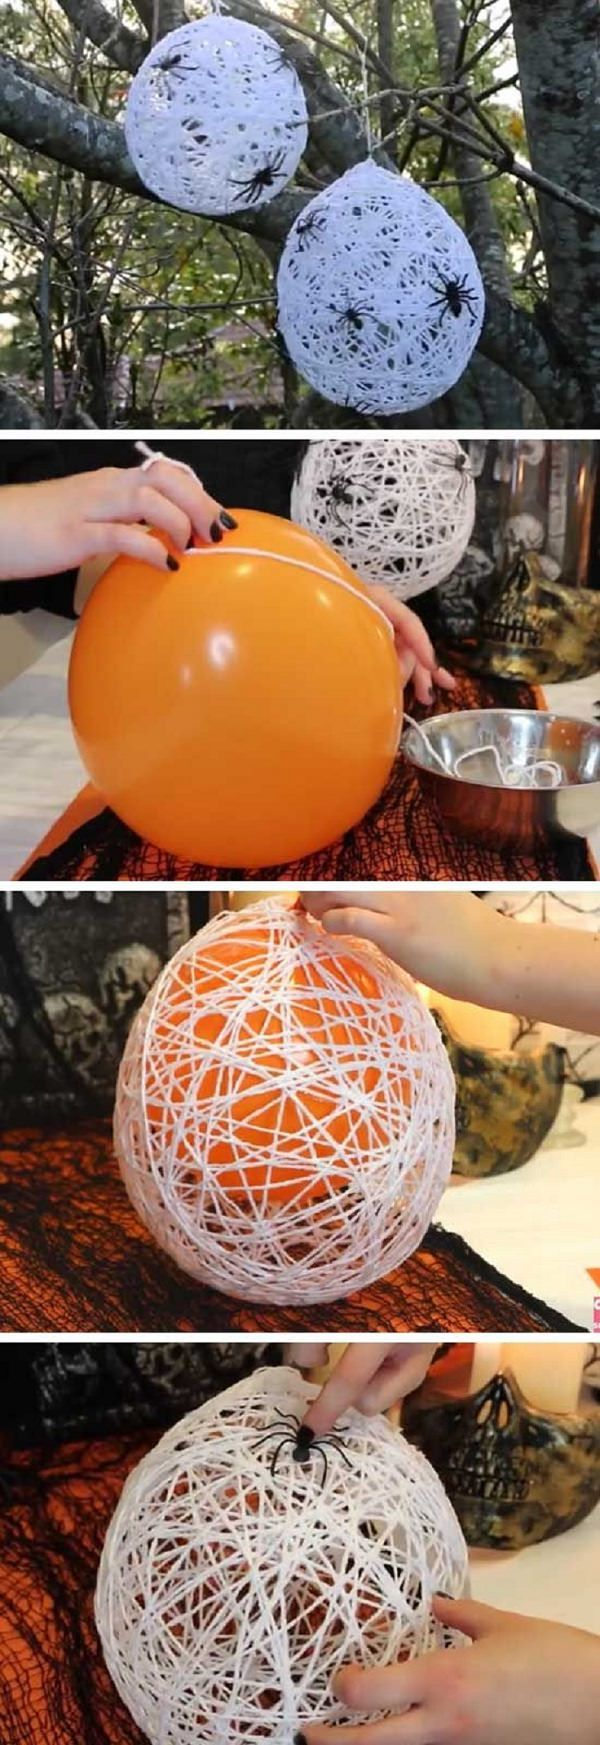 These creative DIY Halloween decorations are the most amazing and will surprise you and your guests for sure. Days away from Halloween, all thrilled and ready to Trick and Treat we have put up one extraordinary gallery to highlight the extraordinary magnitude of this graphic celebration which is Halloween. 1. Build Floating Hats Luminaries via …